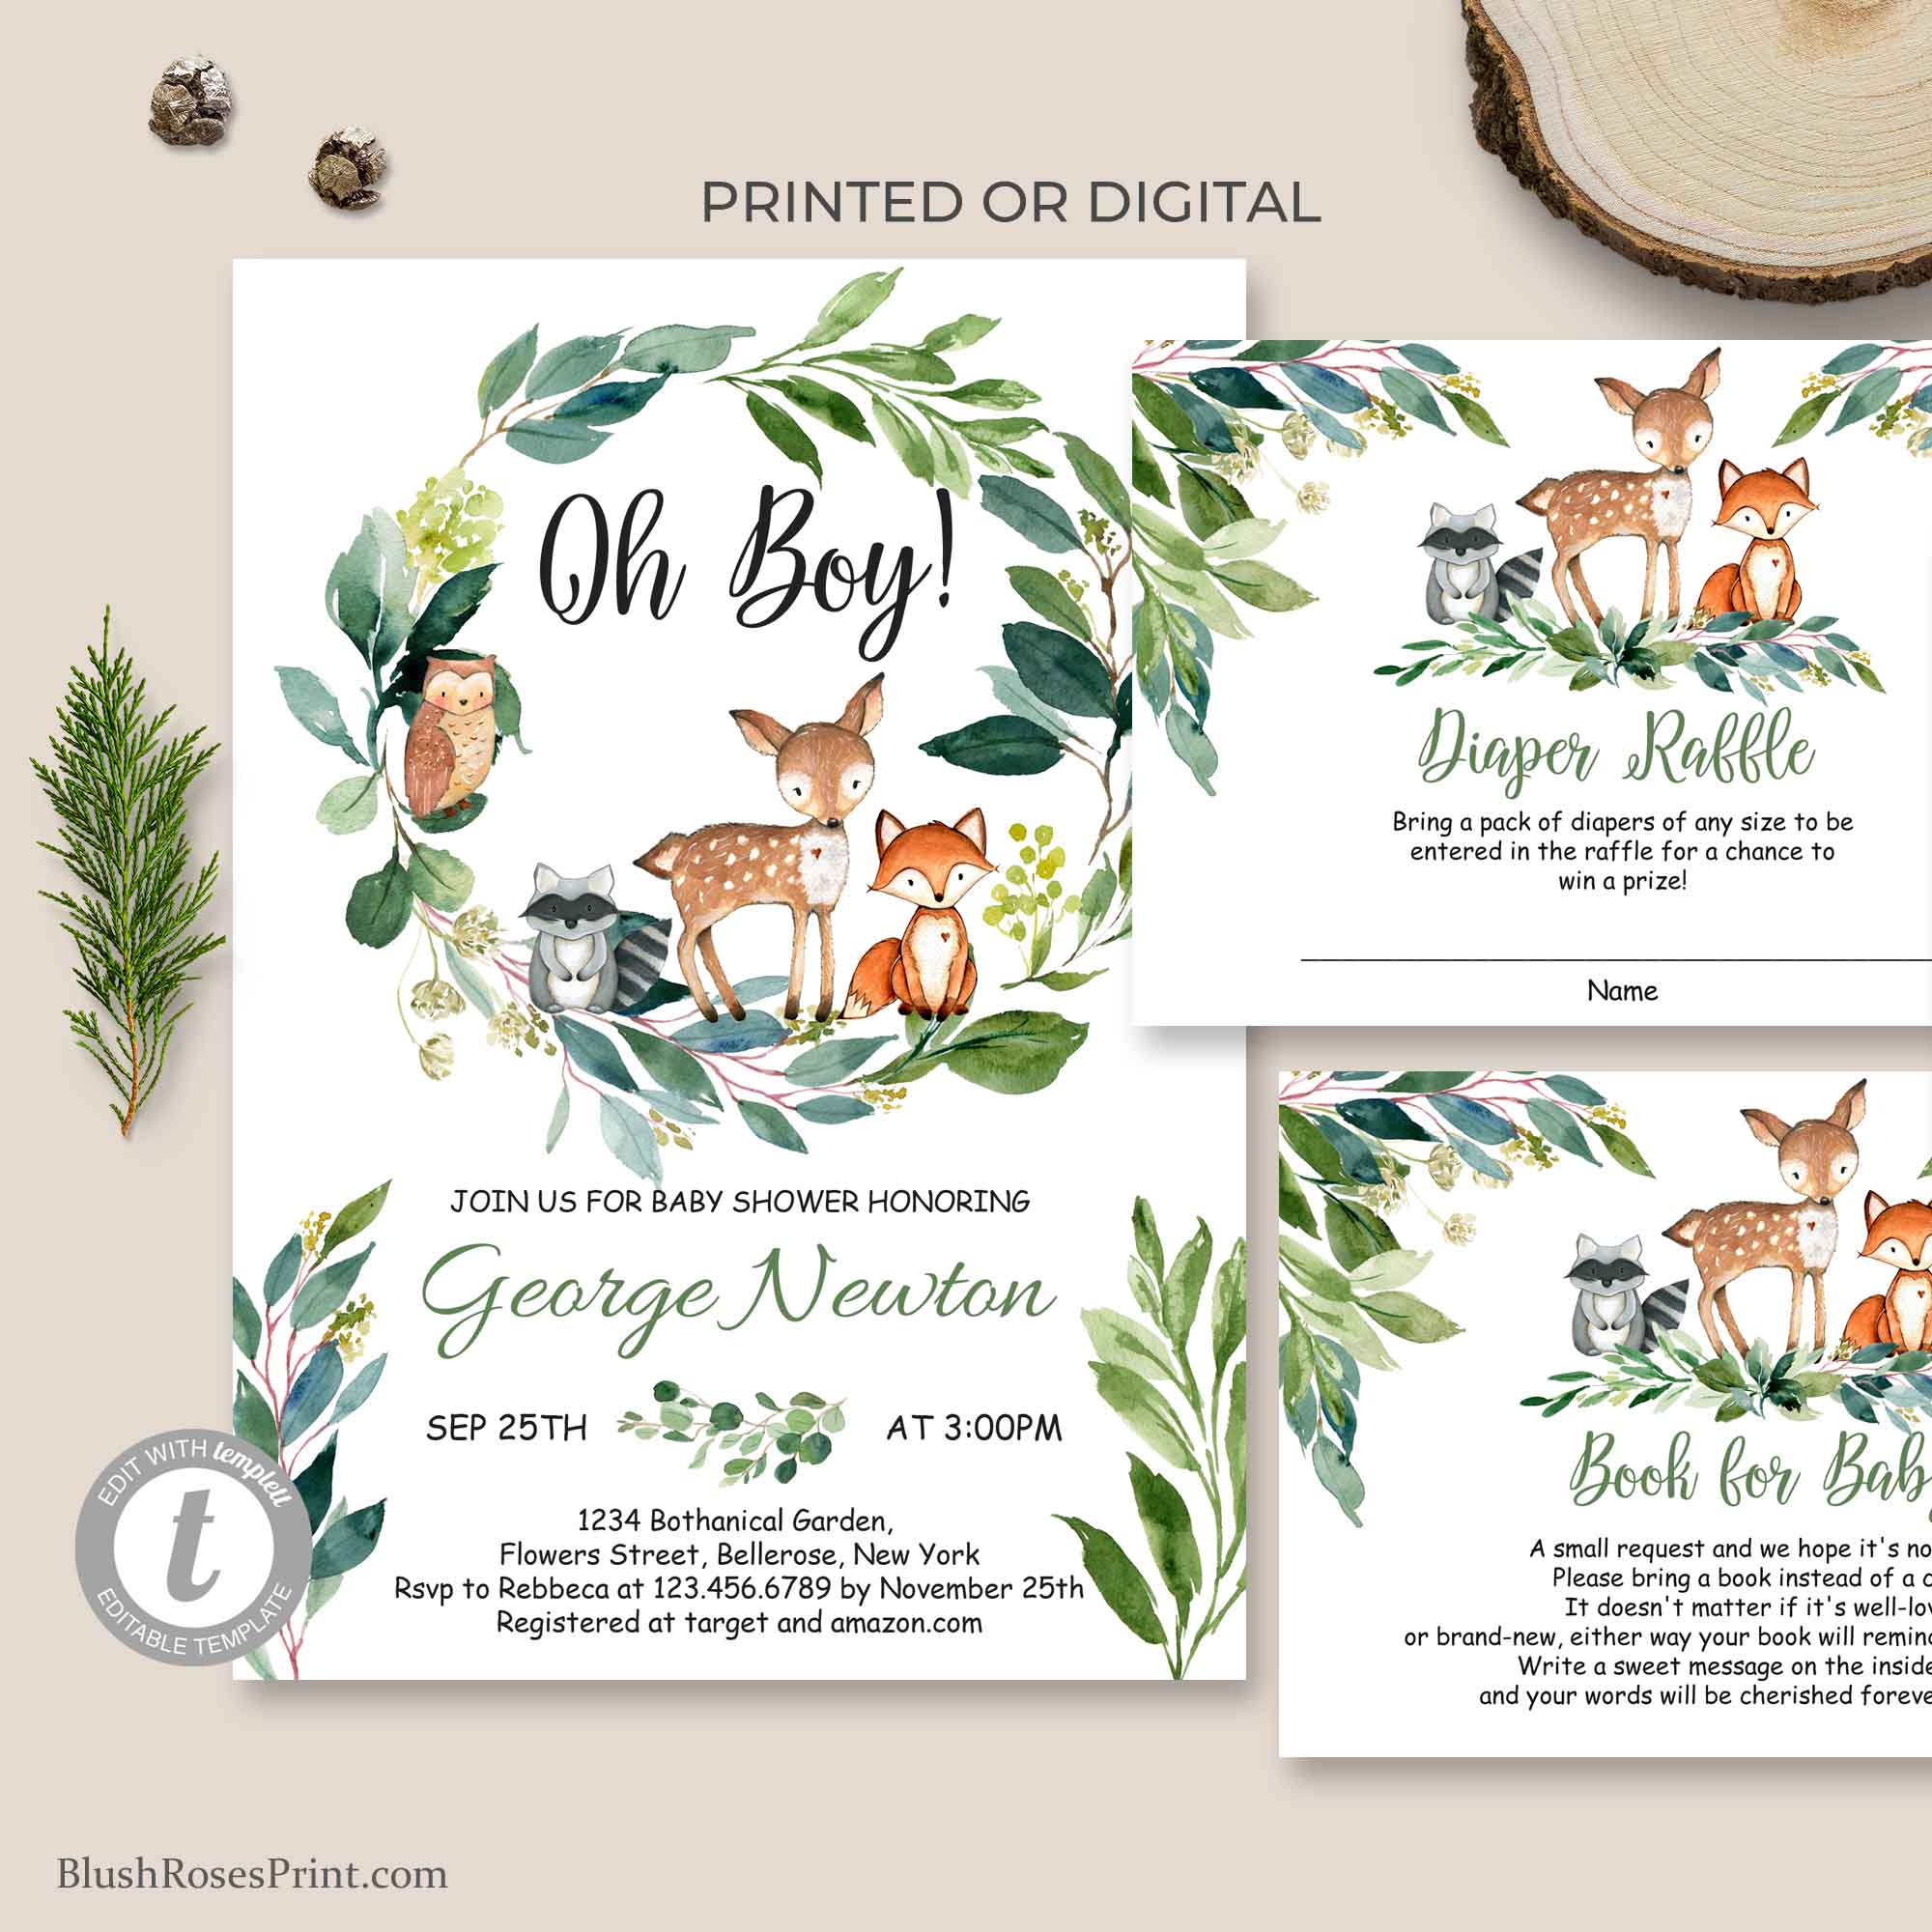 Woodland Baby Shower Invitation, Oh Boy Invitation Printable, Editable With TEMPLETT, Eucalyptus Greenery Baby Shower INSTANT DOWNLOAD BS110